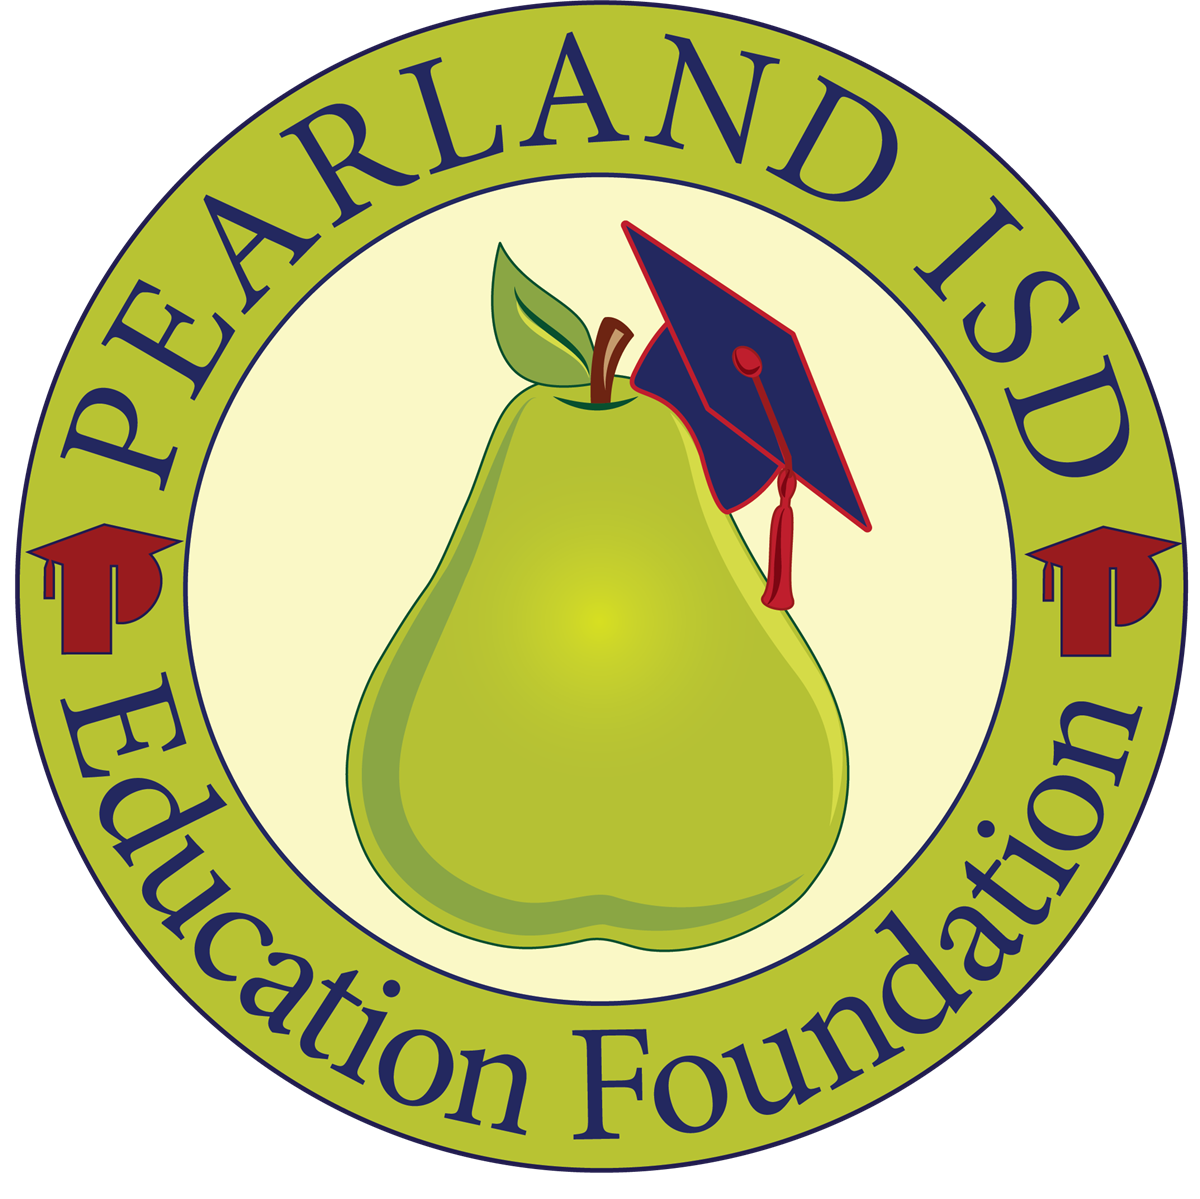 Online spirit apparel store helps raise funds for Pearland ISD Education Foundation